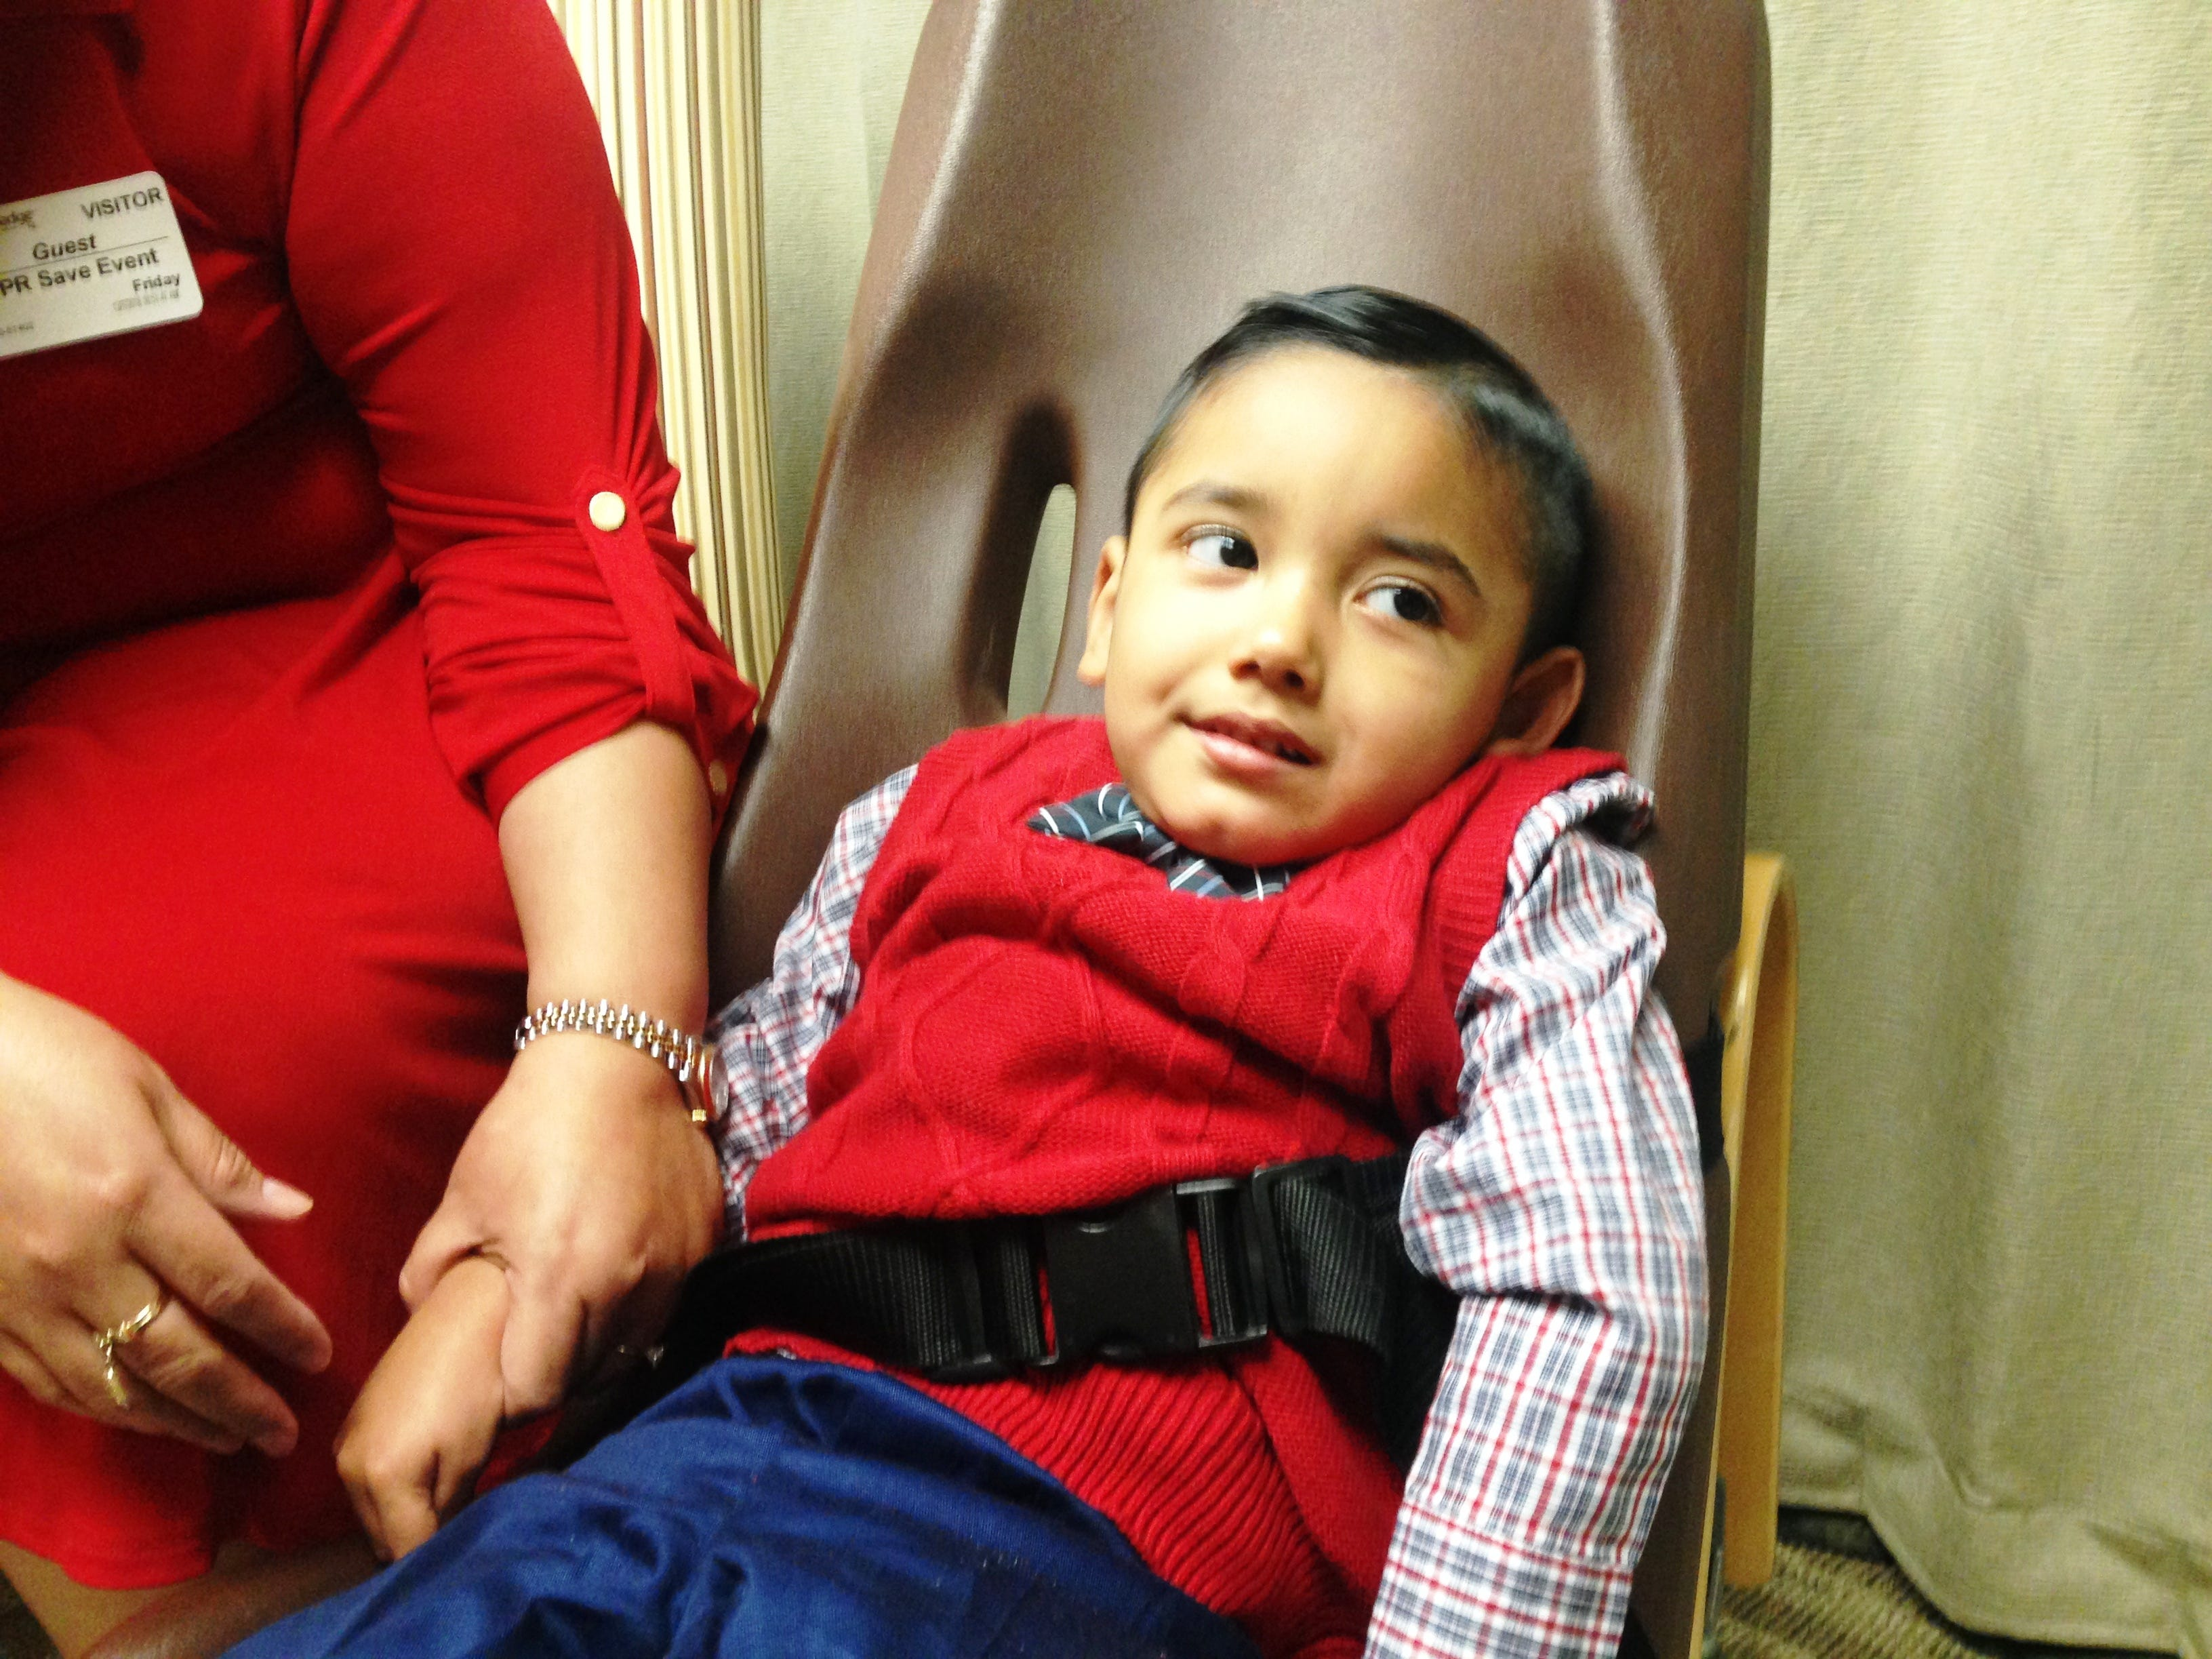 Sebastian Fernandez and his mother, Mireya Rodriguez, attend a first responders reunion on Dec. 7 at Adventist Health Simi Valley. The first responders are credited with saving the boy's life in December of 2013 when he fell into a pool in his backyard.